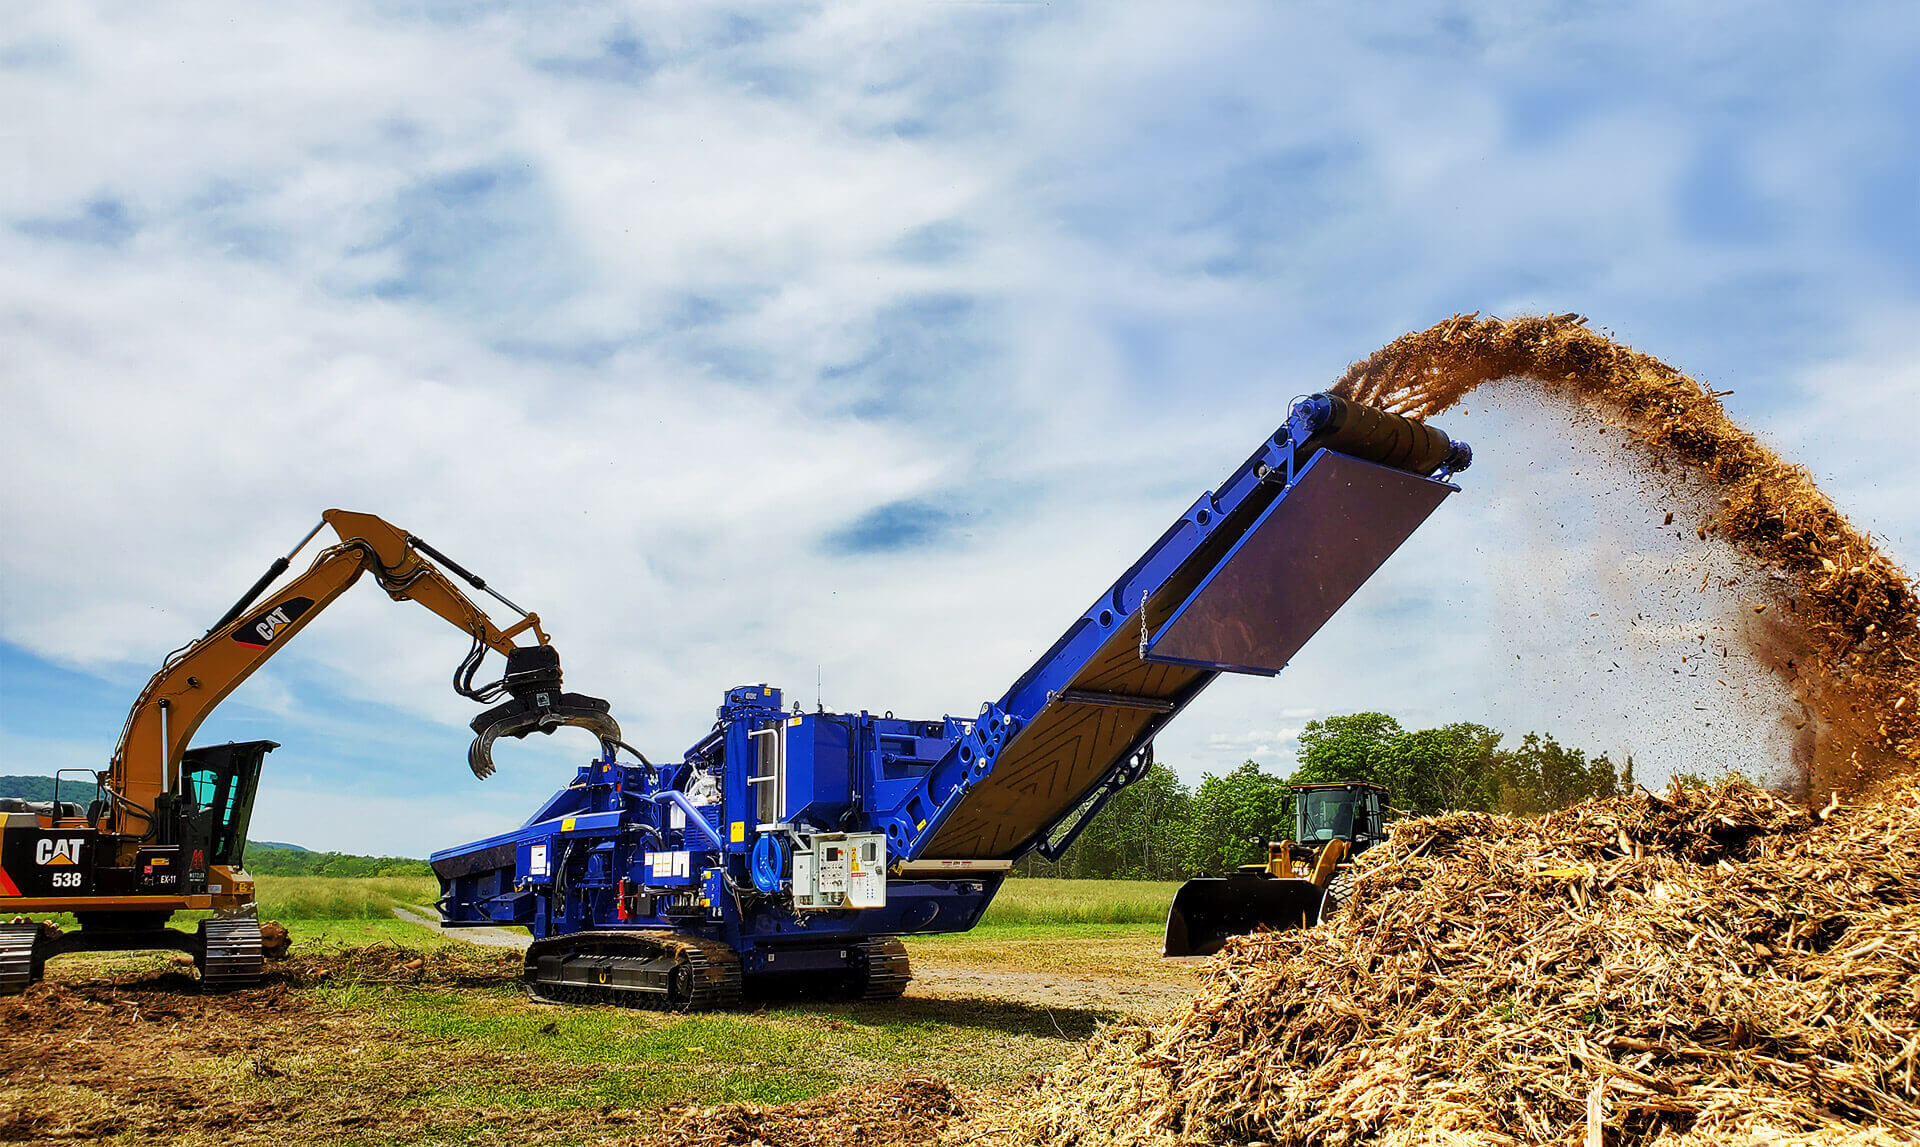 Astec Peterson 5710D Horizontal Grinder making biomass in Pennsylvania with a grapple loading excavator.